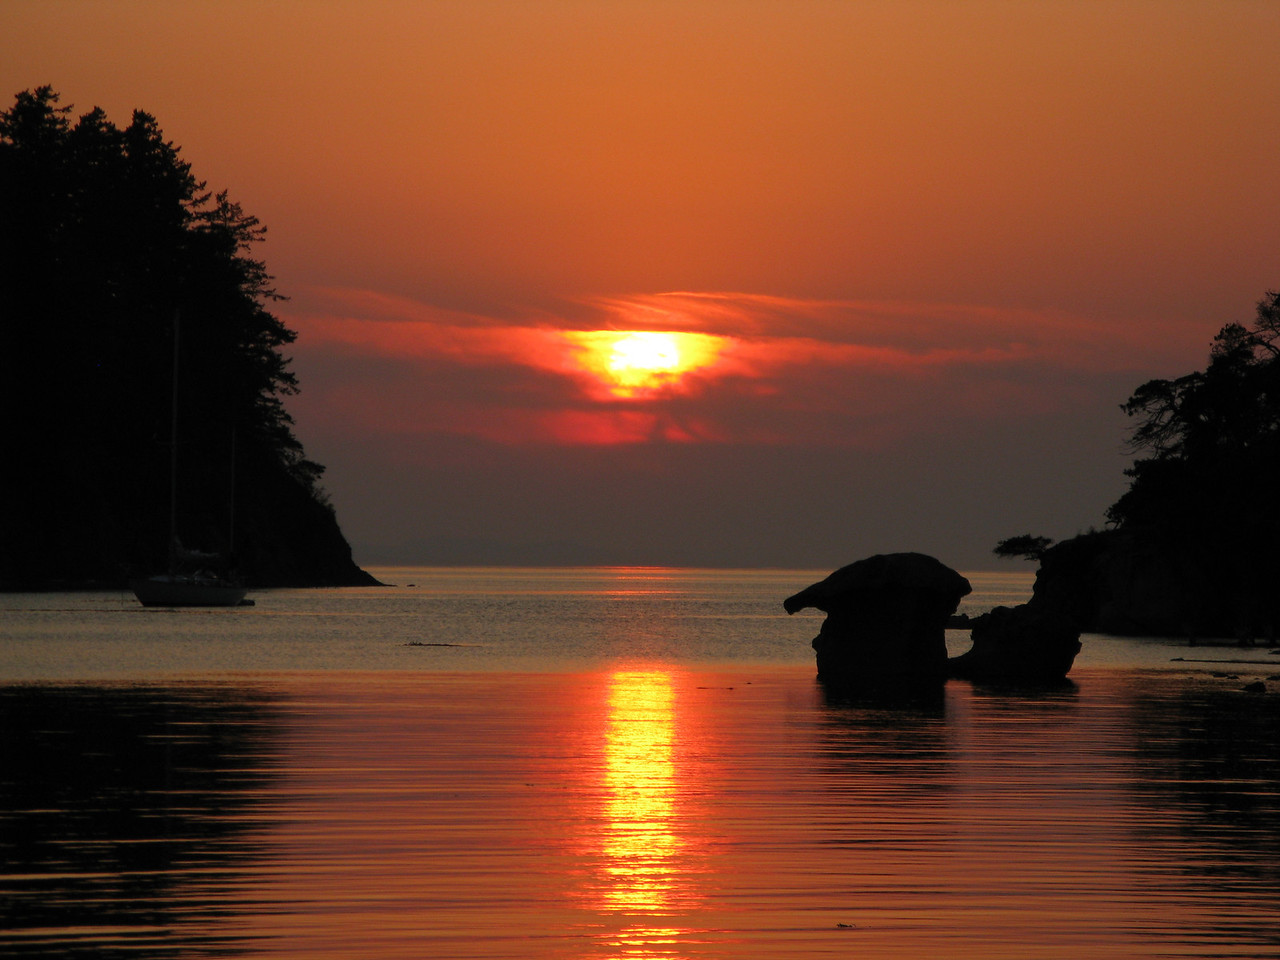 We watched the sunset over Fox Cove on the western side of Sucia Island.